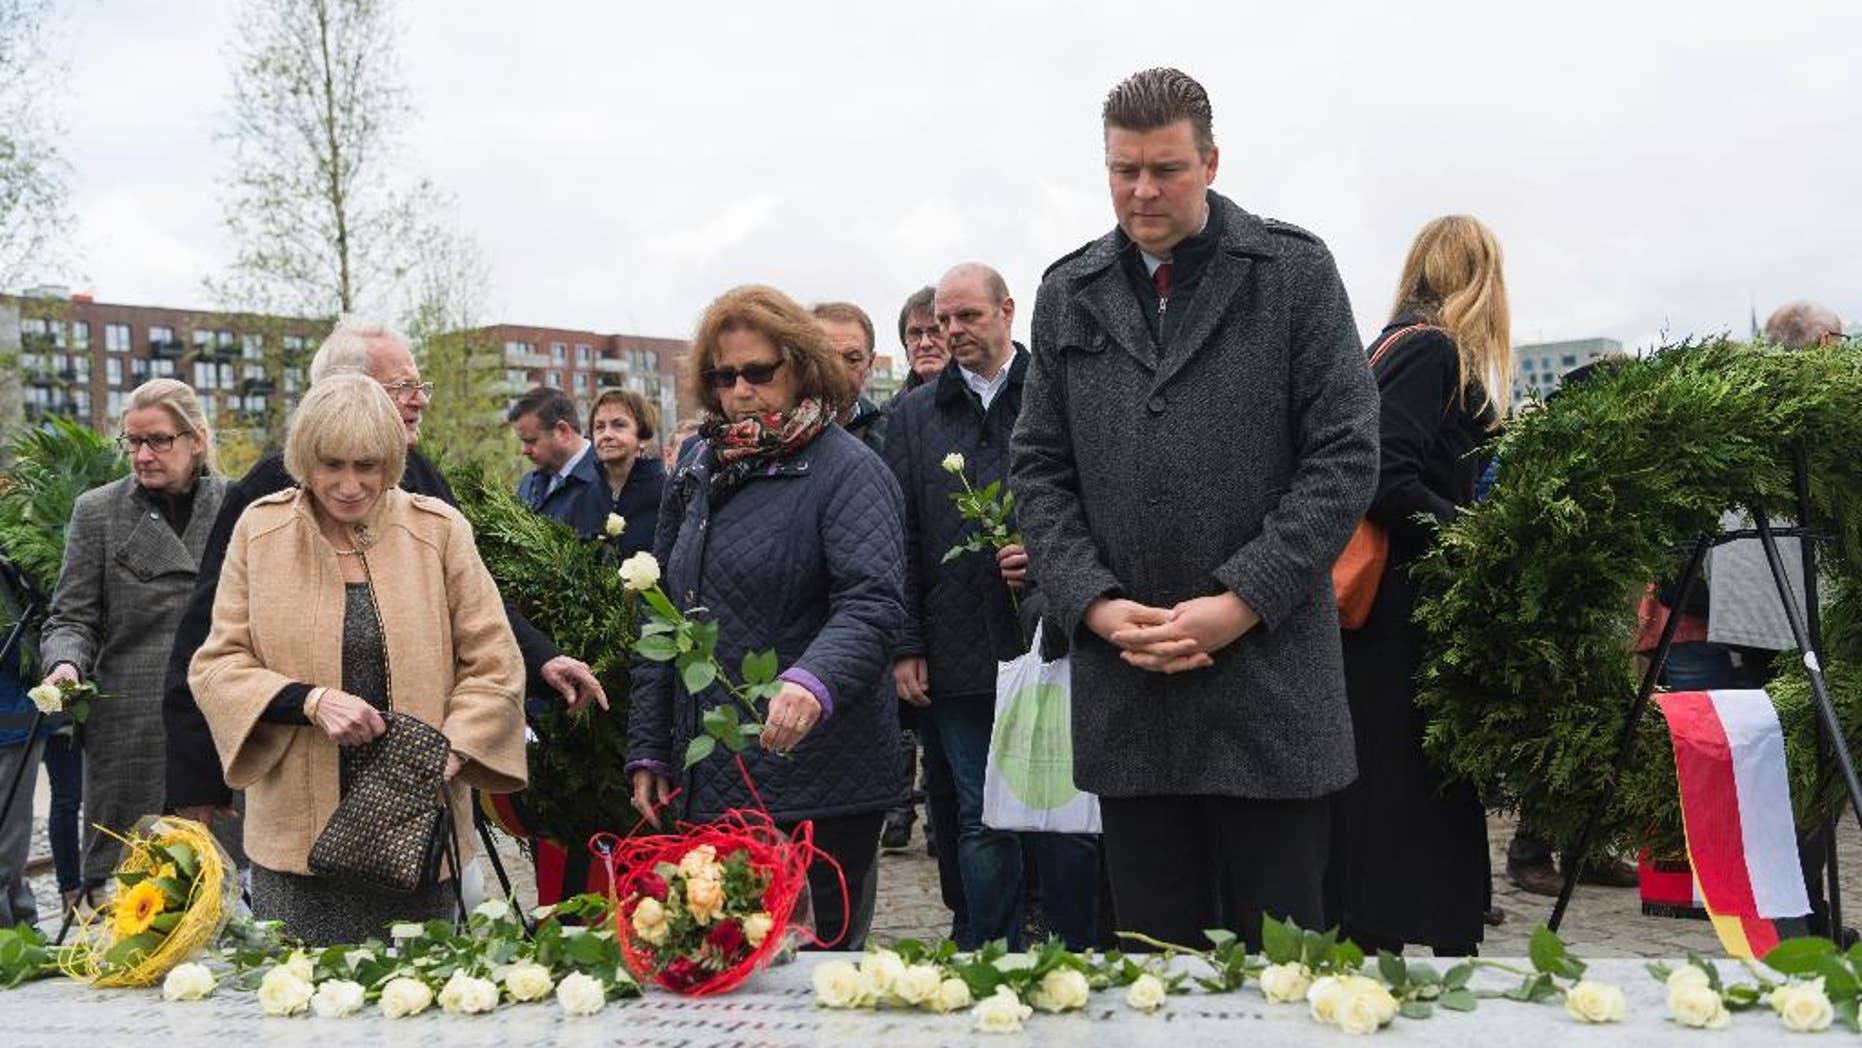 People place white roses on a memorial that was unveiled in the German port city of Hamburg to Jewish and Roma residents who were killed during the Nazi Holocaust, Wednesday, May 10, 2017. (Christophe Gateau/dpa via AP)